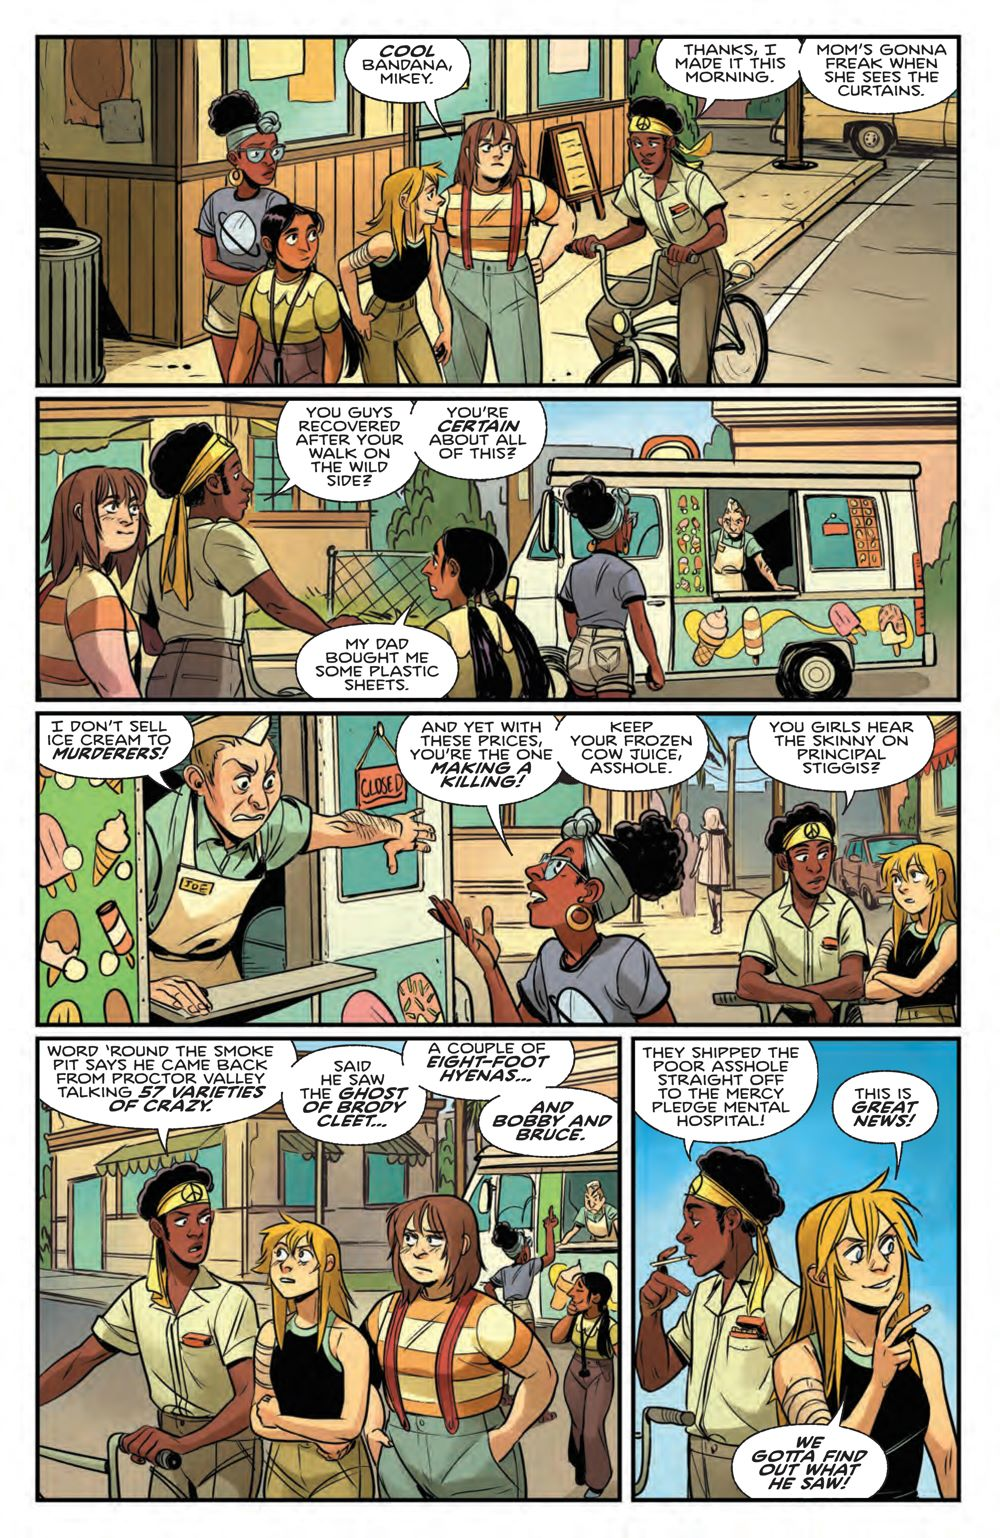 ProctorValleyRoad_004_PRESS_6 ComicList Previews: PROCTOR VALLEY ROAD #4 (OF 5)